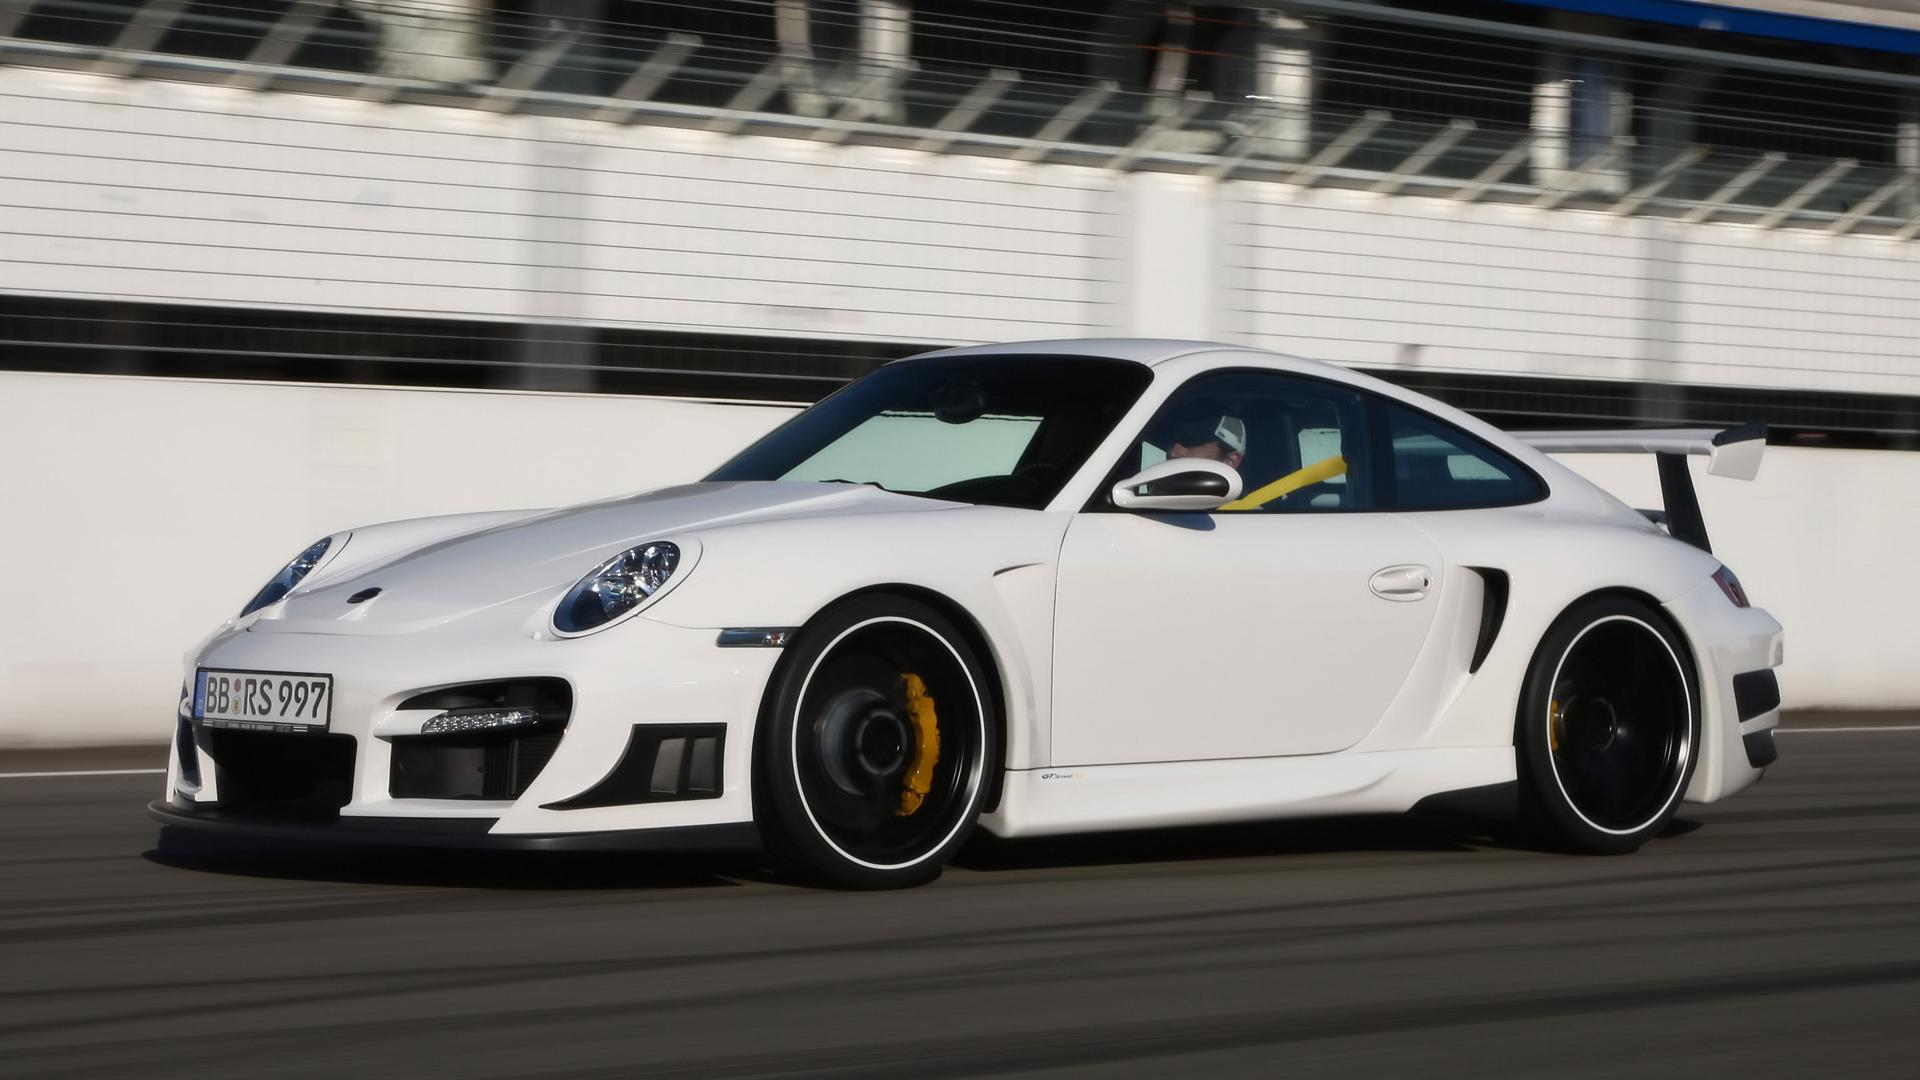 Porsche Car-Wallpapers 1080p